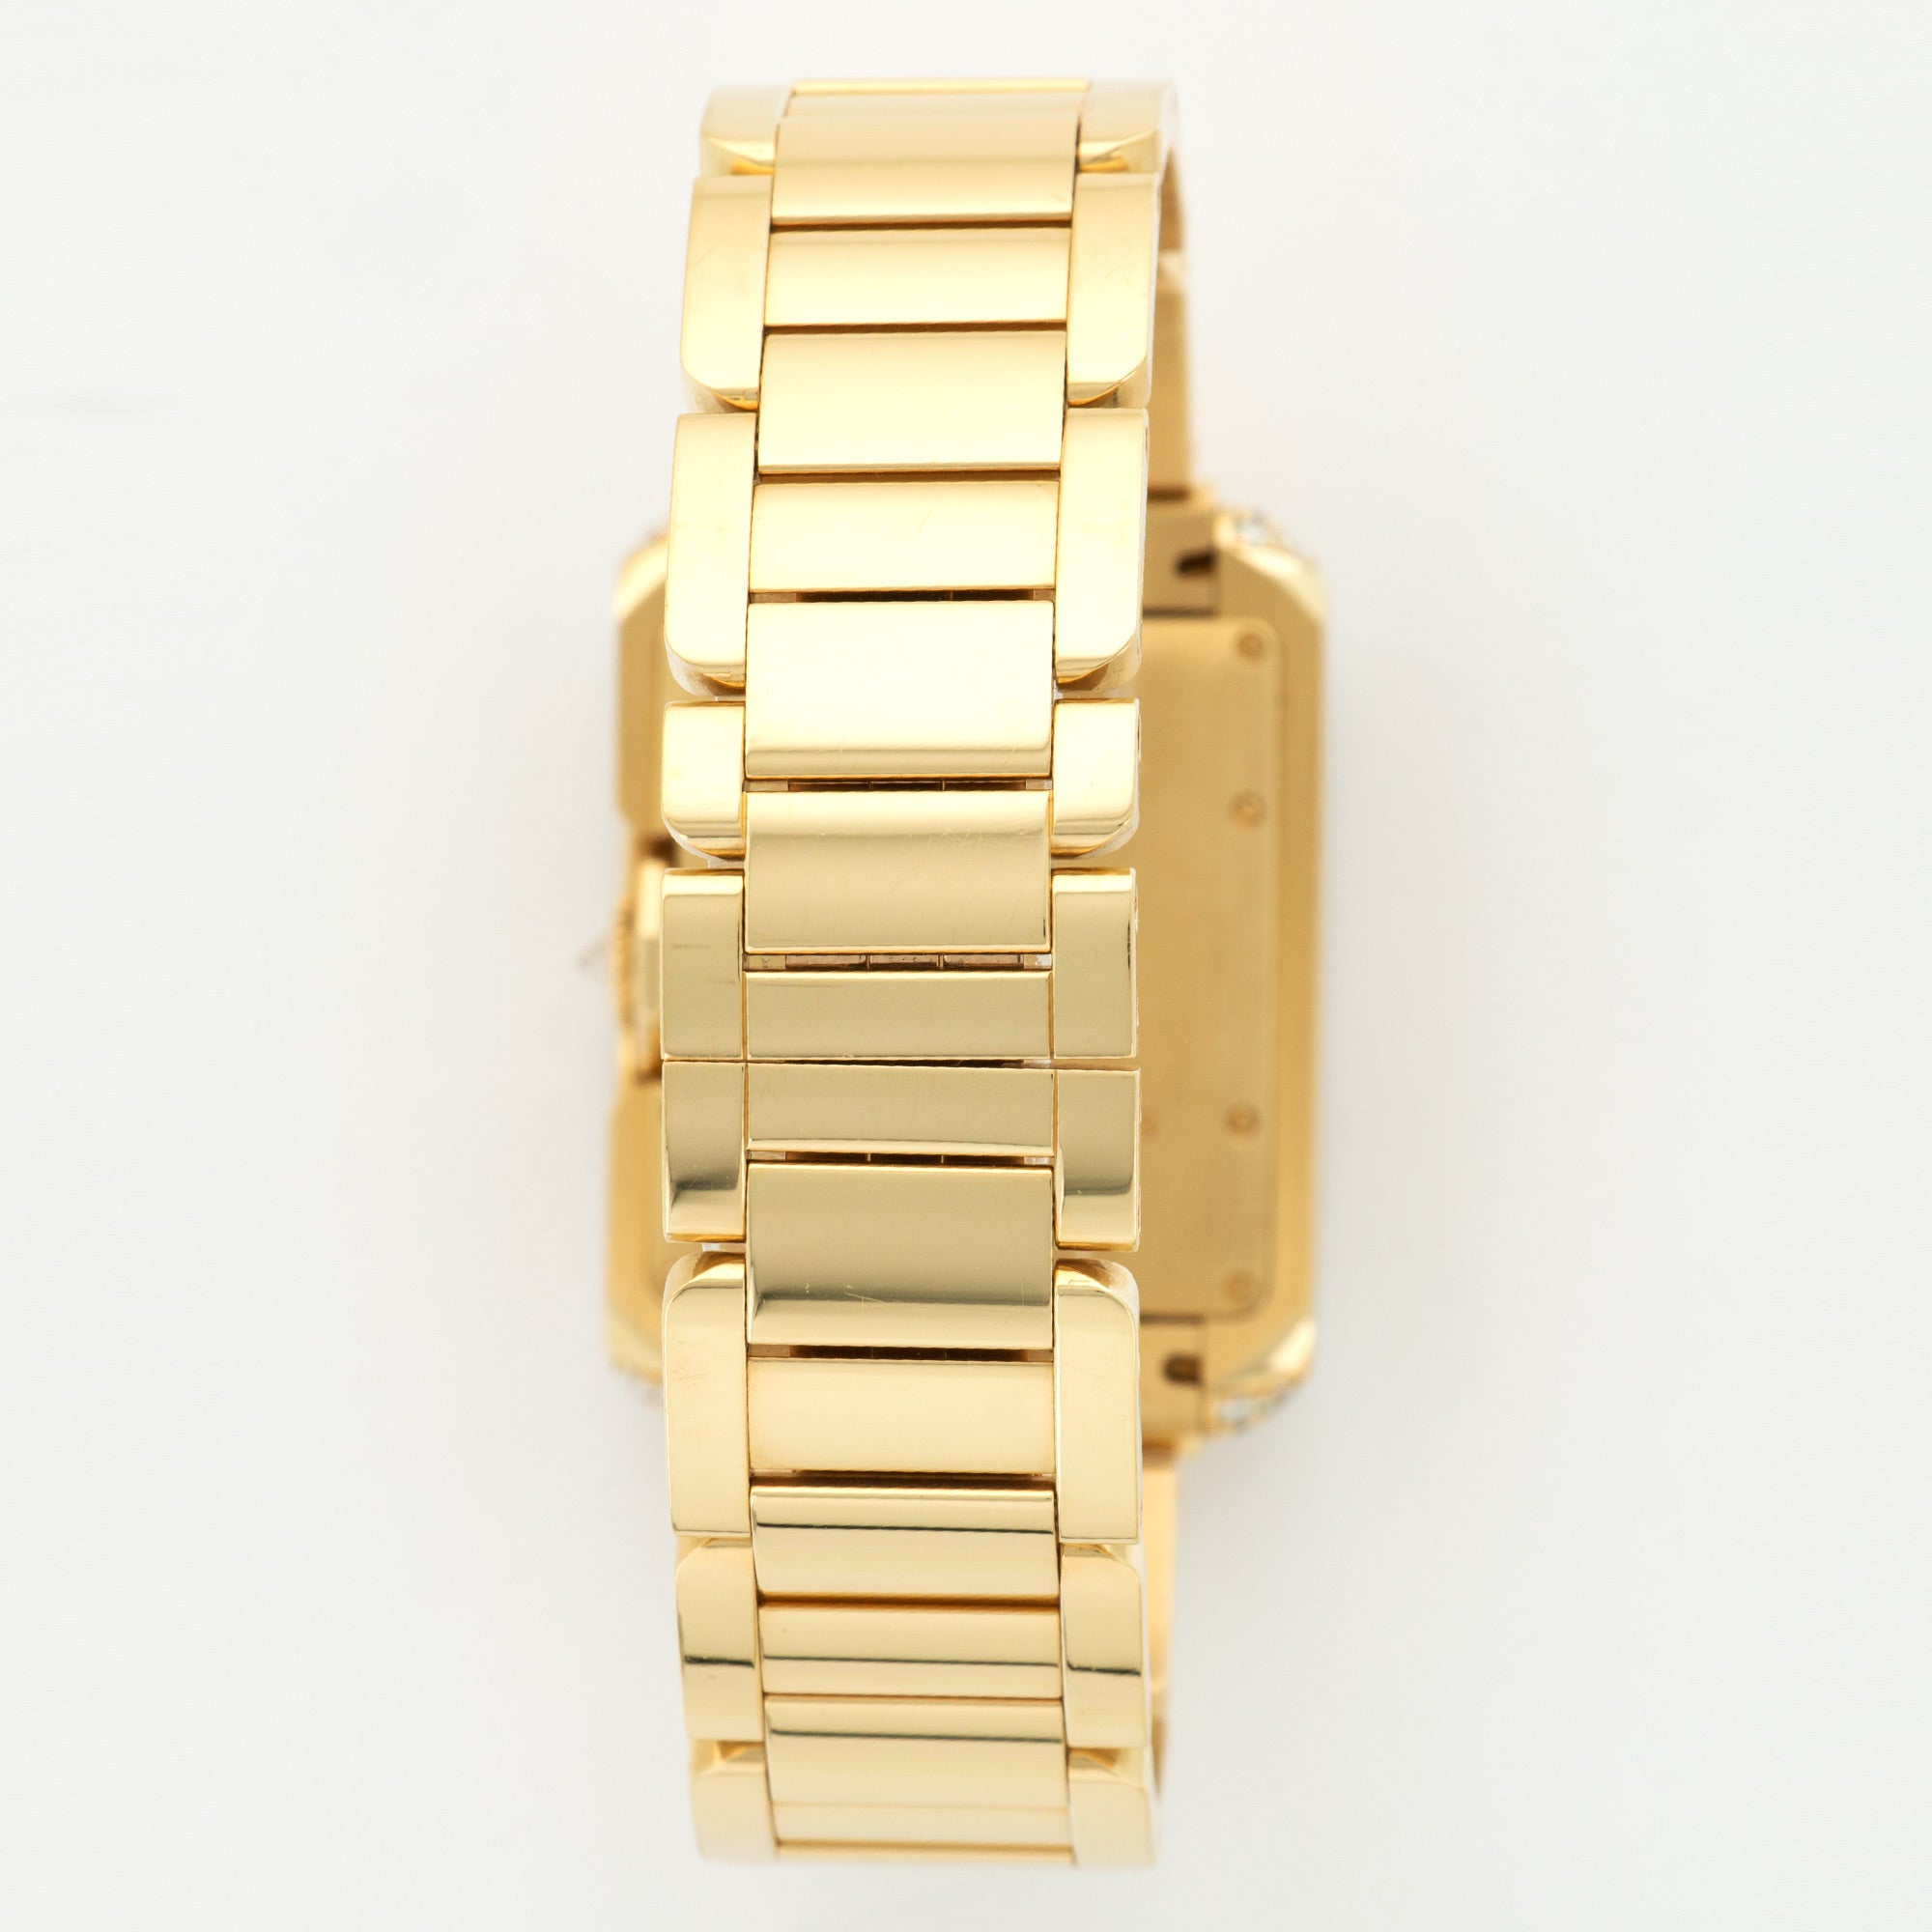 Cartier Tank Anglaise WT100006 18k YG  Mint NO STYLE SPECIFIED 18k YG Silver with Roman Numerals 39.2mm X 29.8mm Automatic 2017 Yellow Gold Bracelet B+P